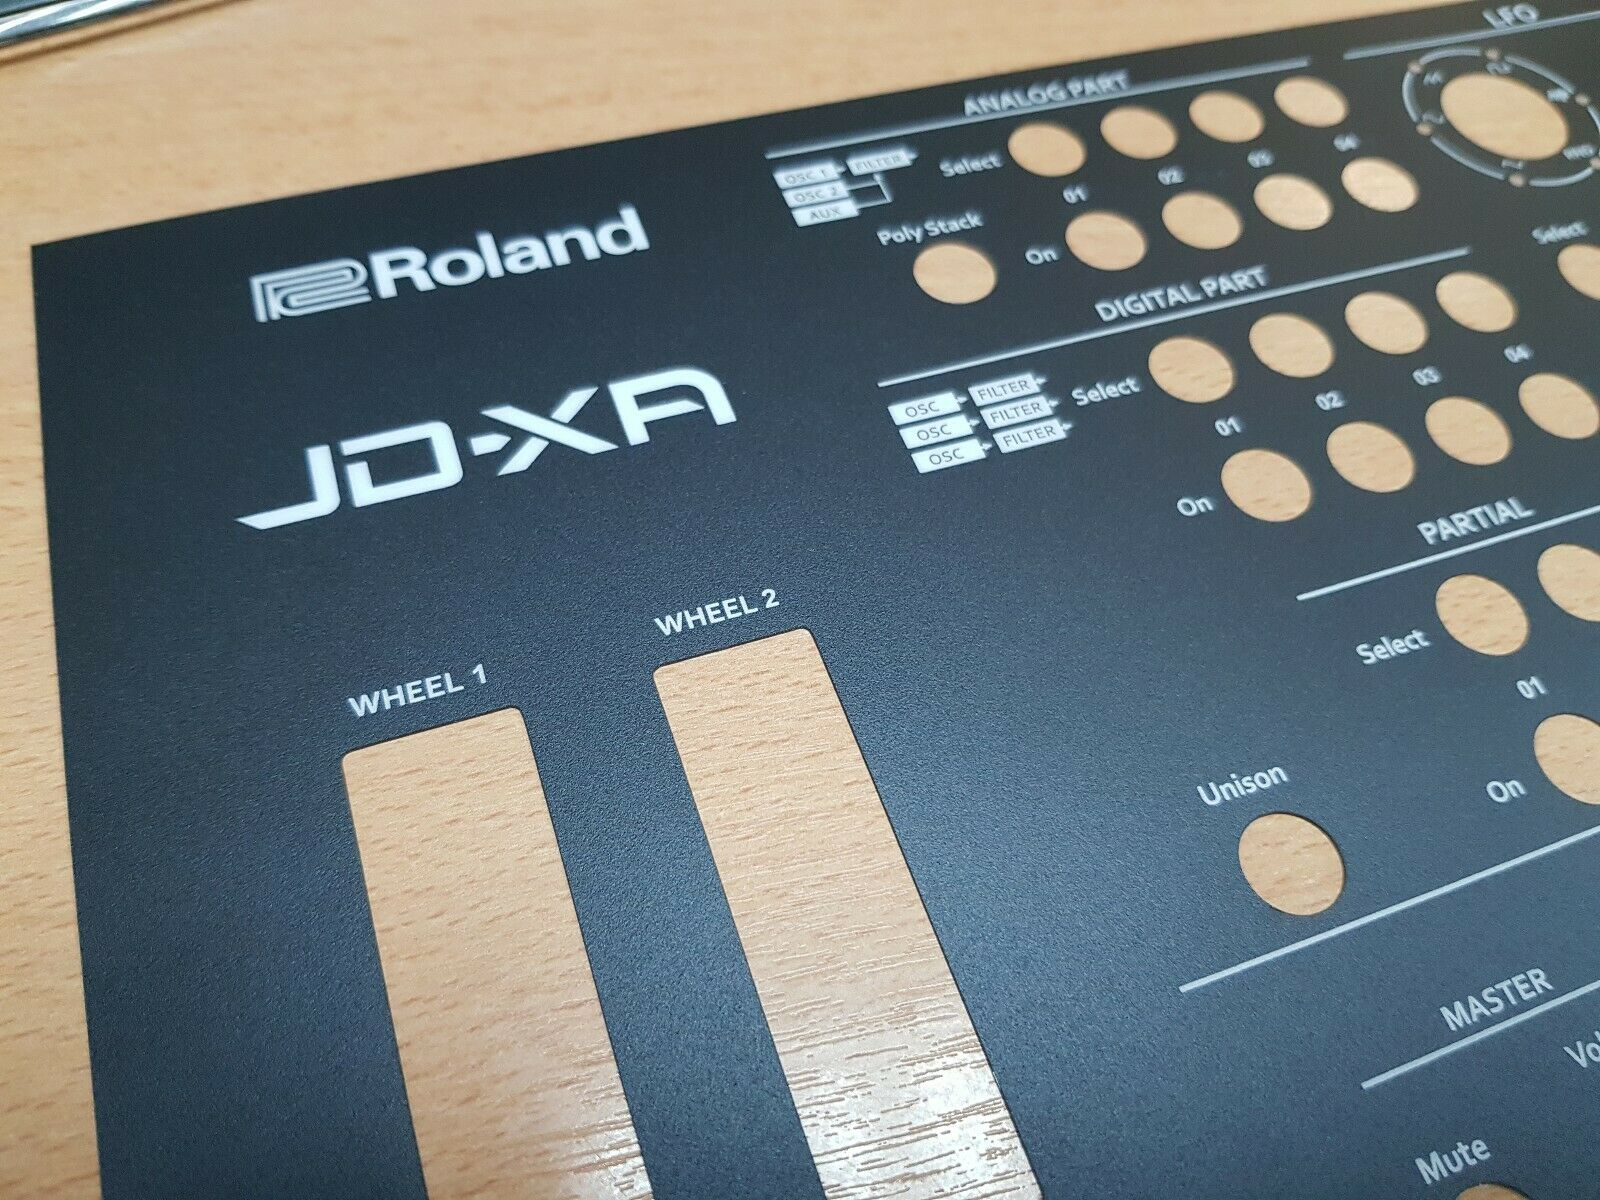 One Set Of 5 Panels - JD-XA synth - screen printed